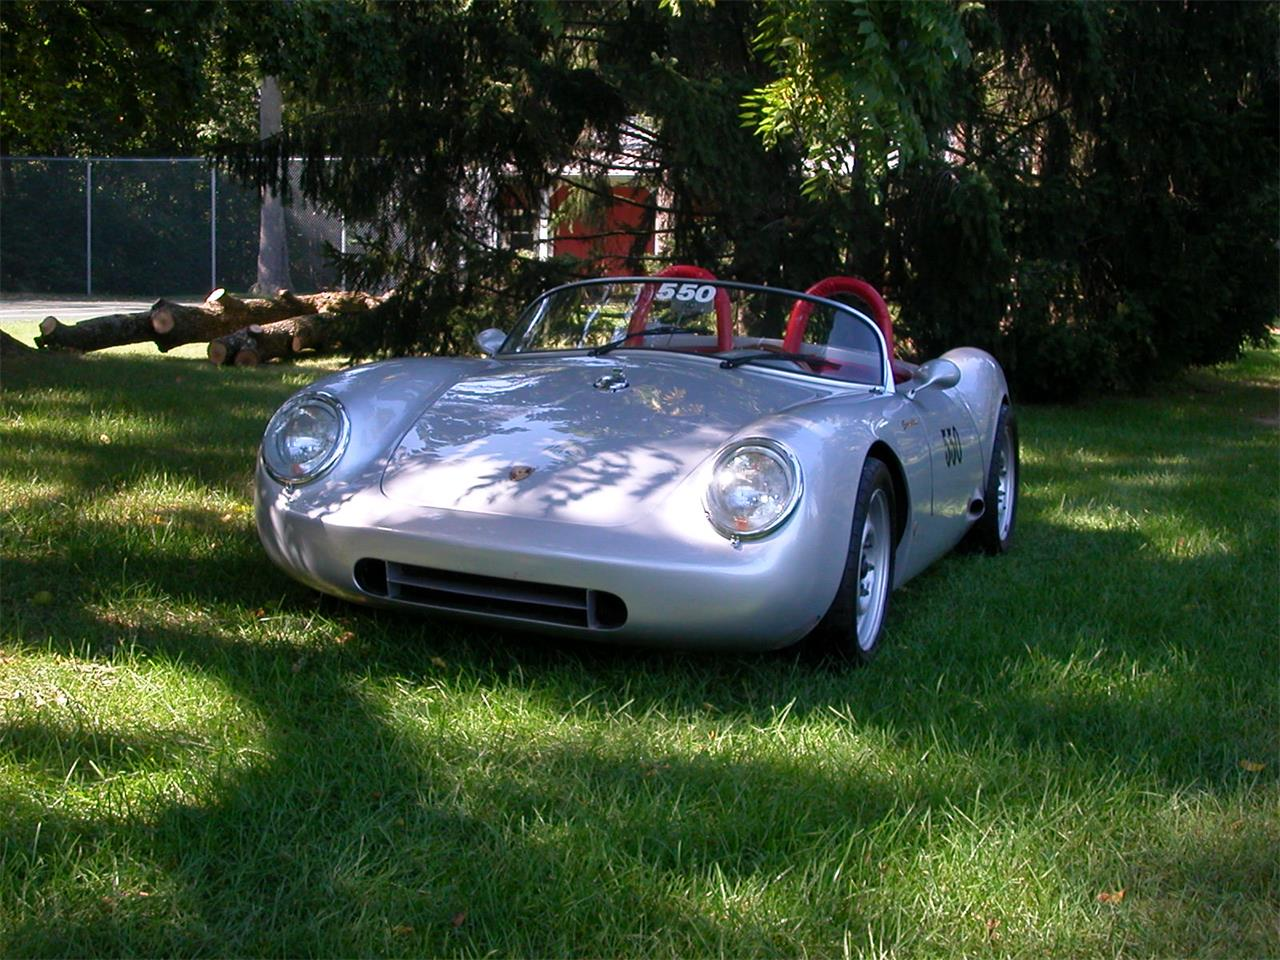 Large Picture of Classic 1955 550 Spyder Replica located in Troy Ohio - $31,000.00 Offered by a Private Seller - LBBR